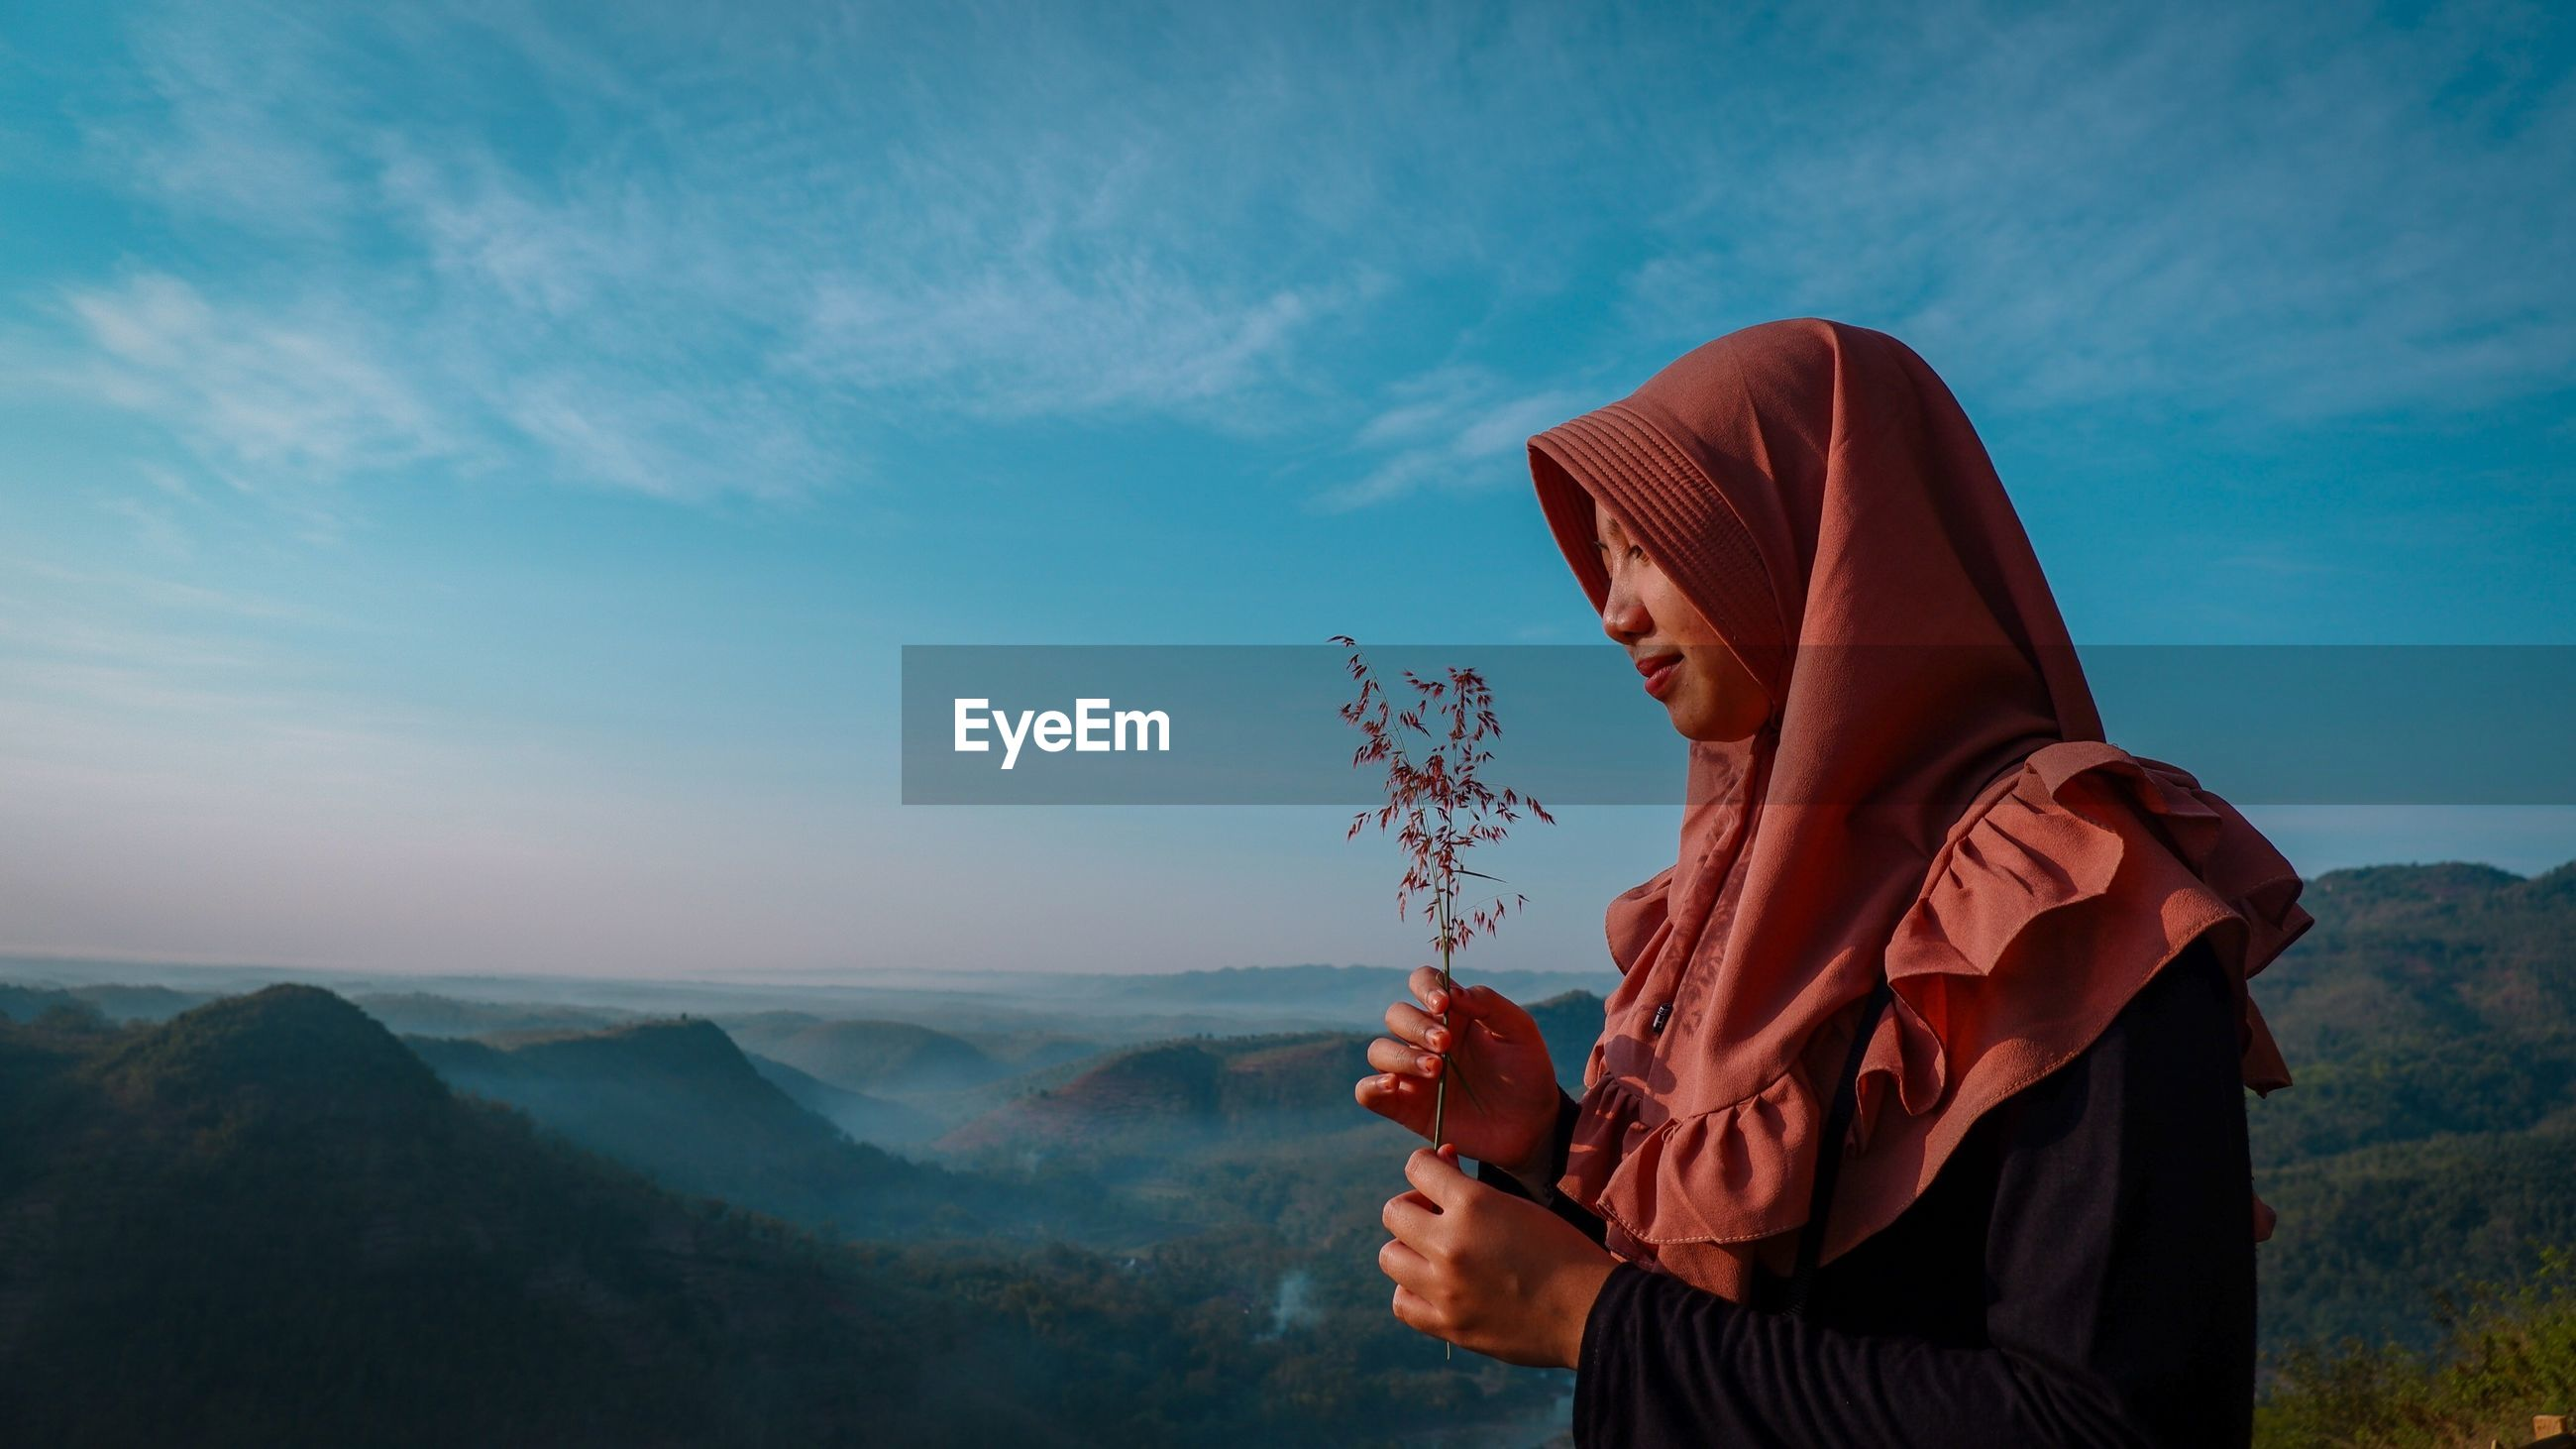 Side view of woman wearing headscarf while holding plant on mountain against sky